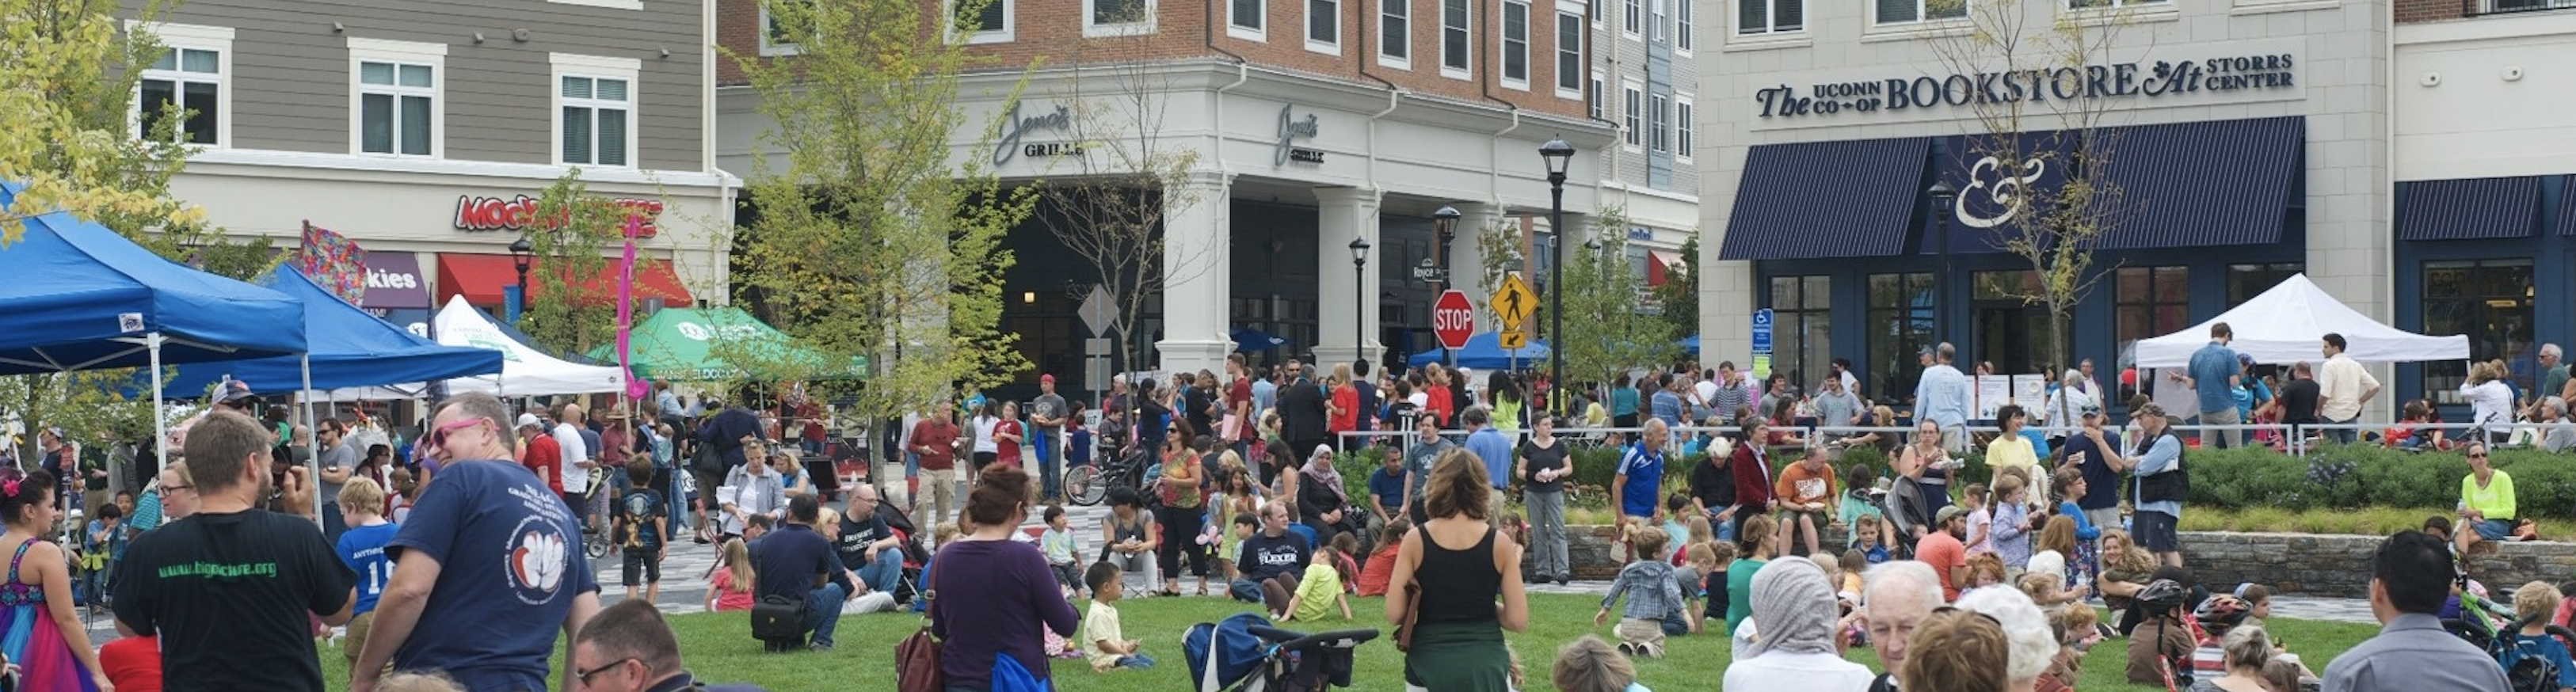 Storrs - group of people in square